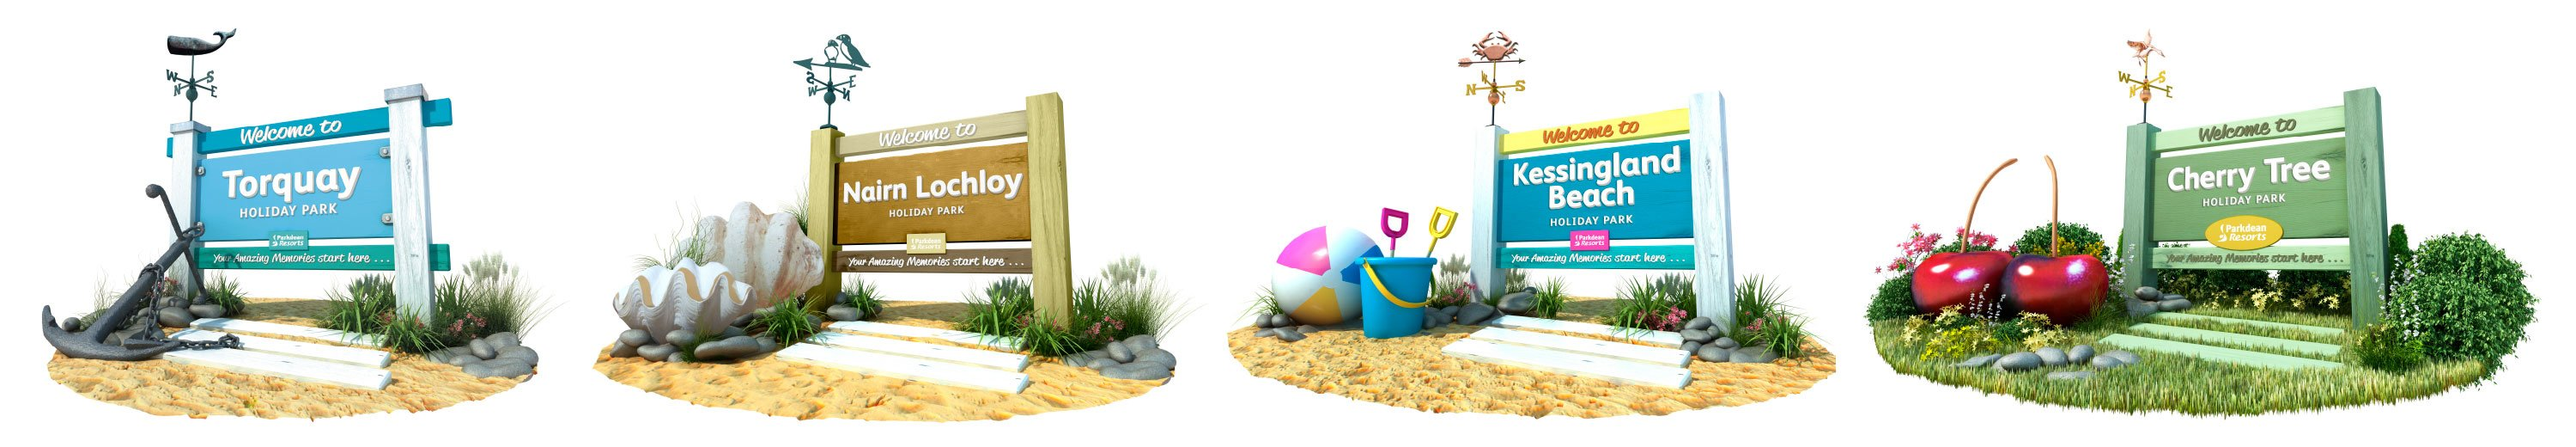 Parkdean Resorts entrance signage proposal